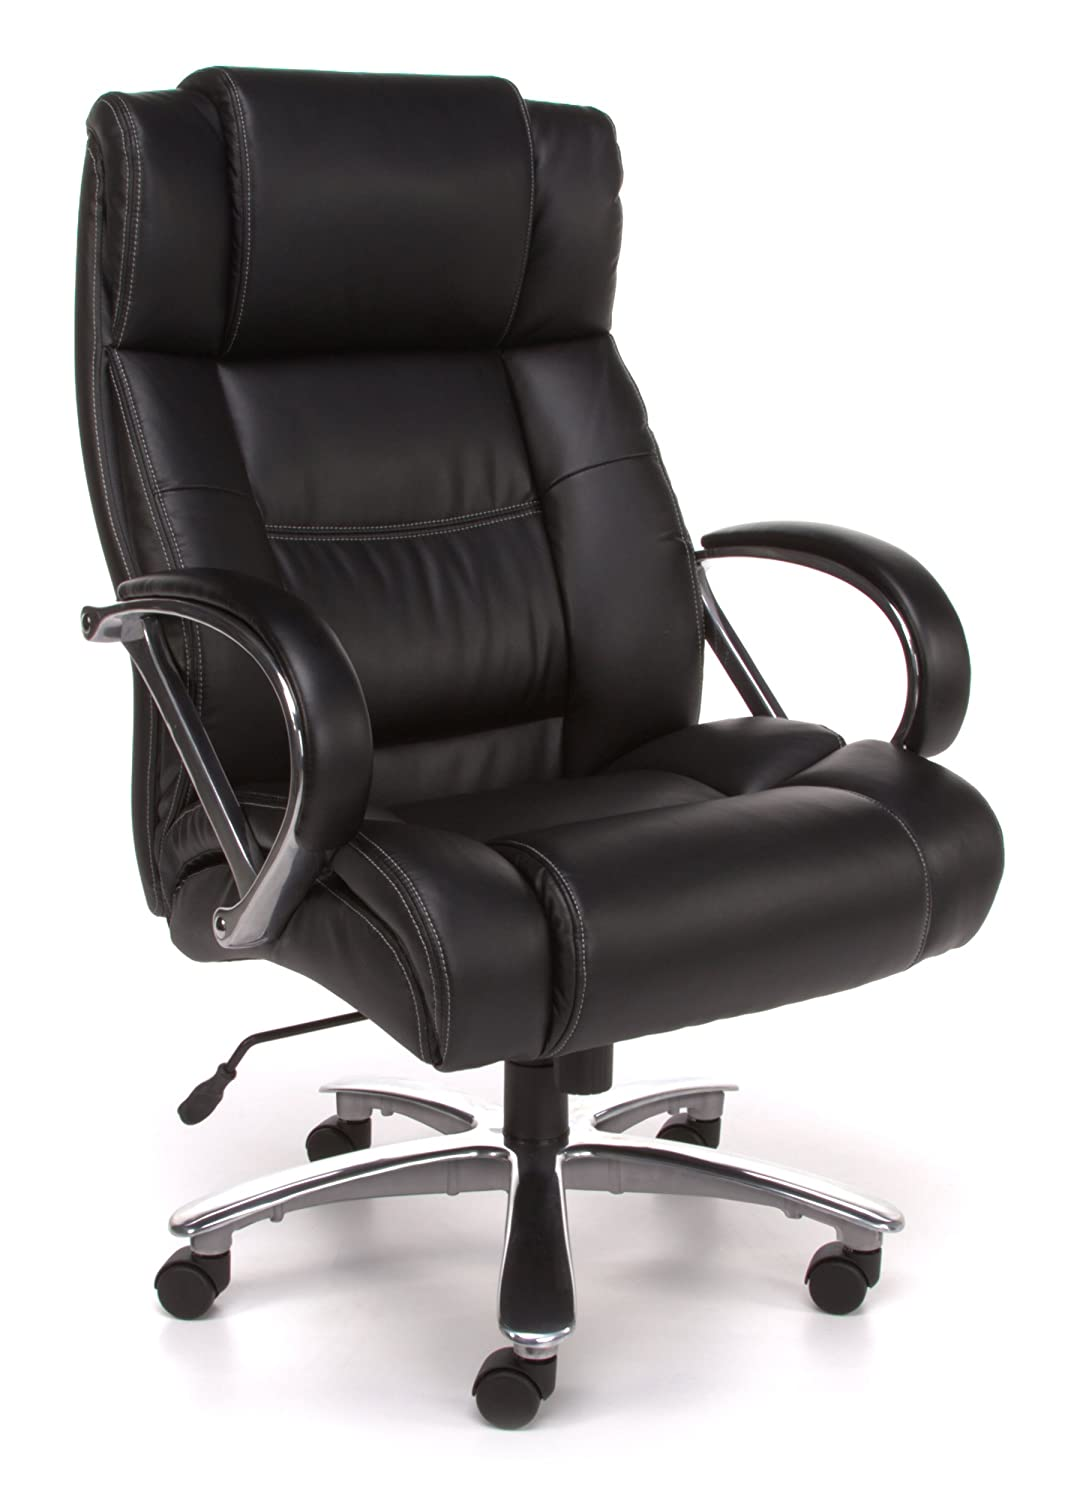 what are the best big and tall office chair with 500 lbs